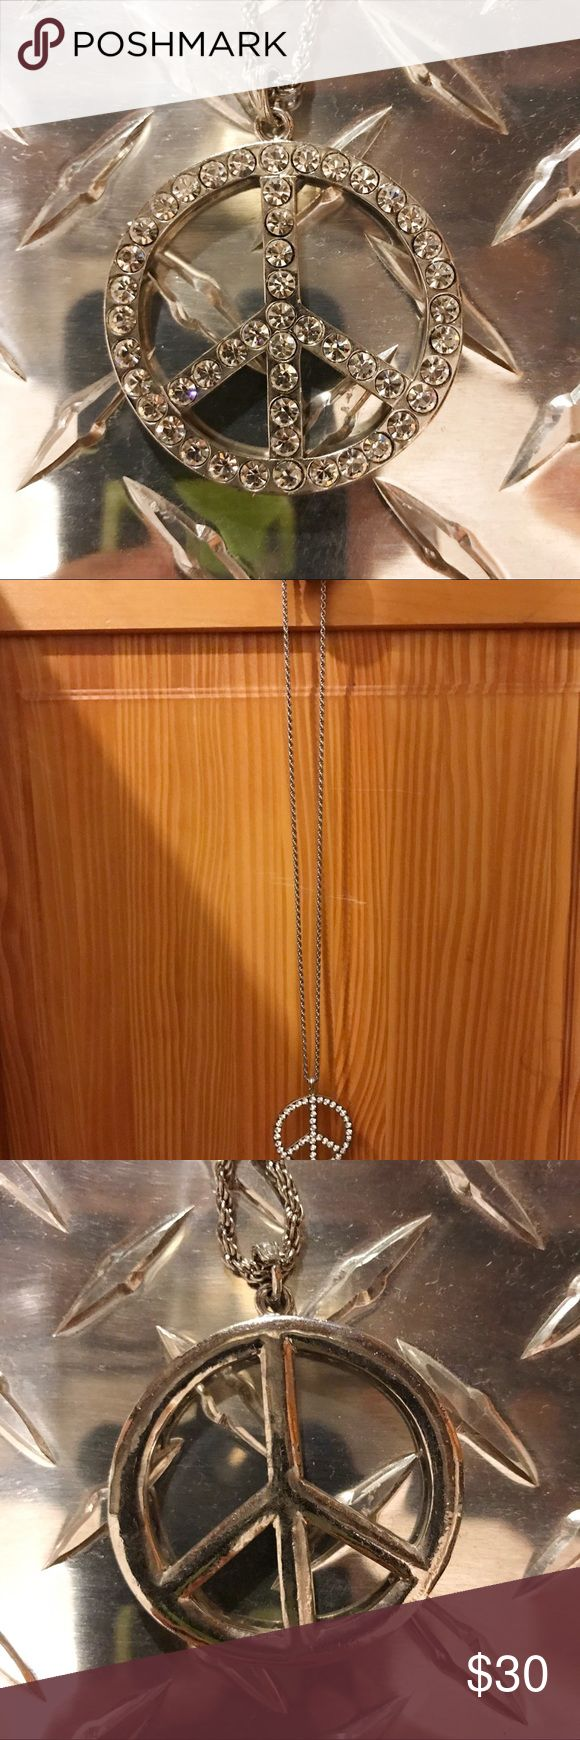 Peace Sign Necklace Reversible peace sign necklace! Very versatile and can dress up or down any outfit, depending on which side you use! Jewelry Necklaces